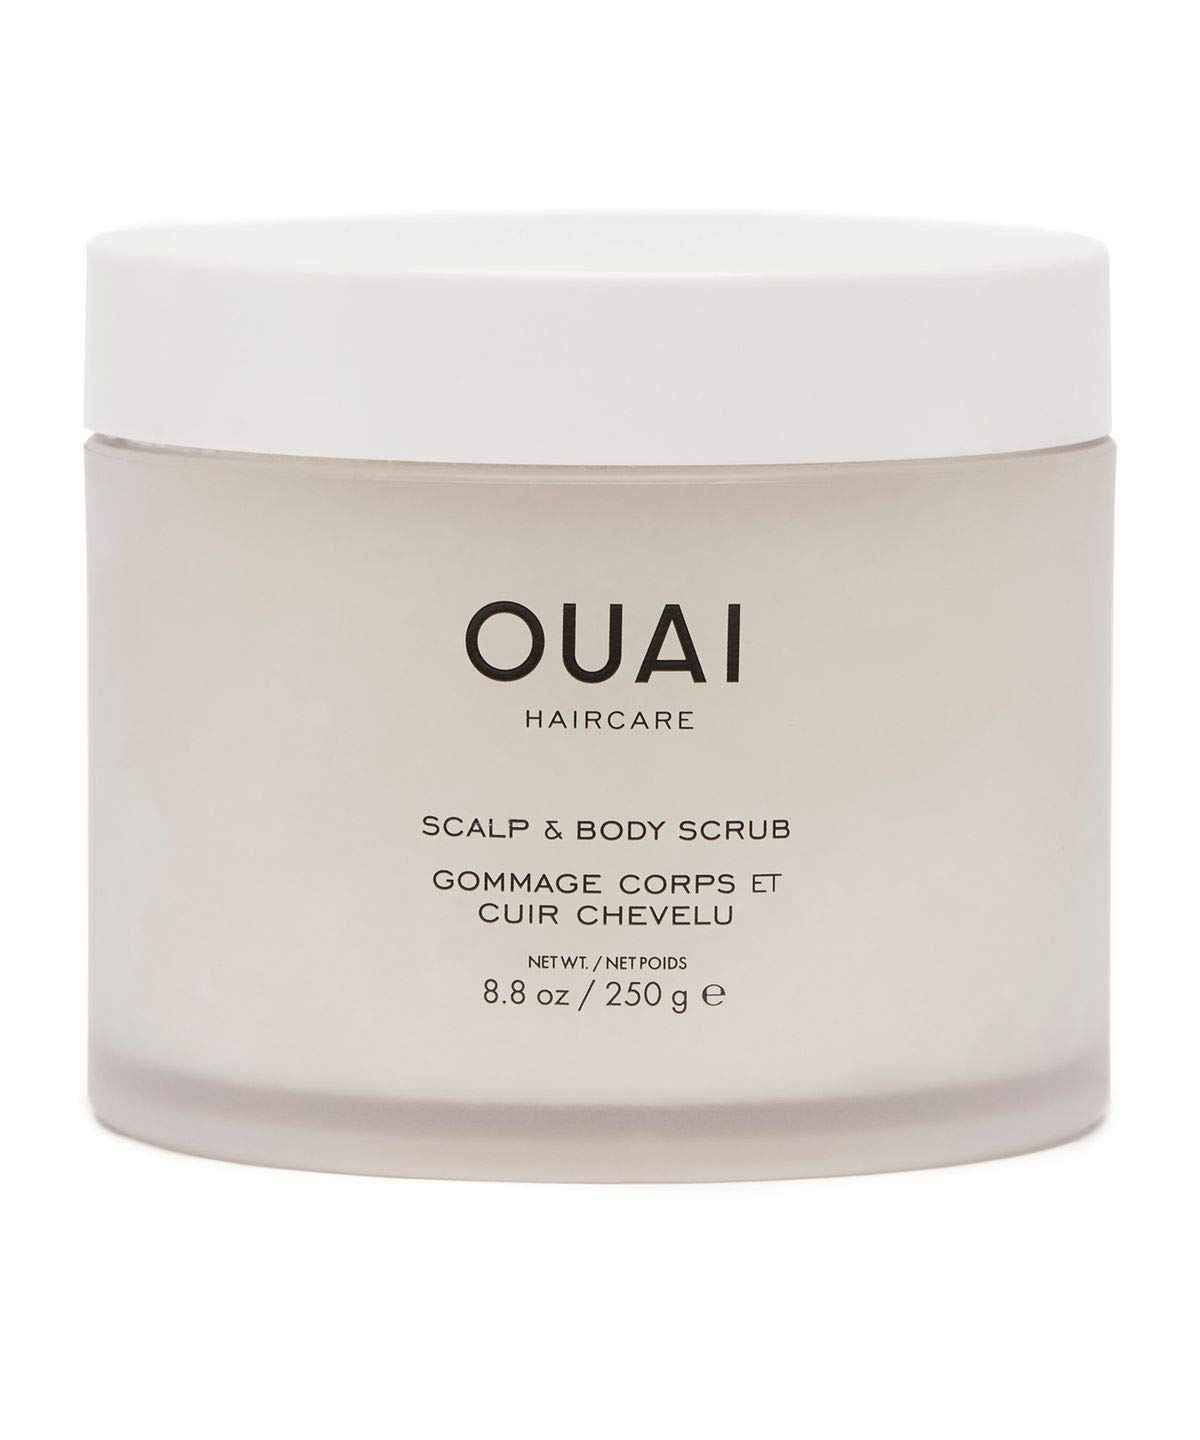 OUAI Scalp & Body Scrub by OUAI Haircare